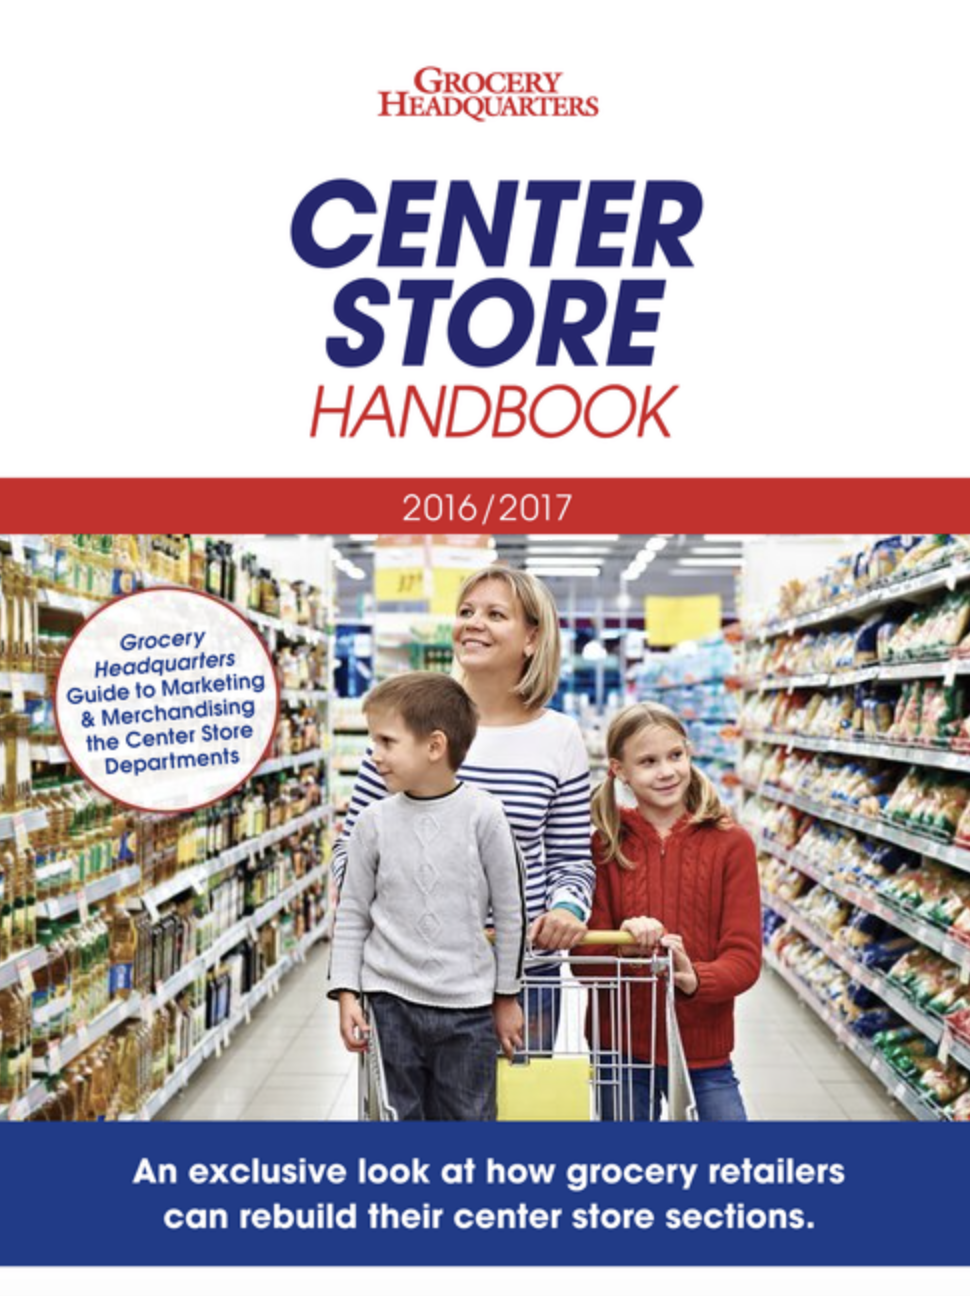 Winsight Grocery Business Magazine Center Store Handbook 2016-17 Issue